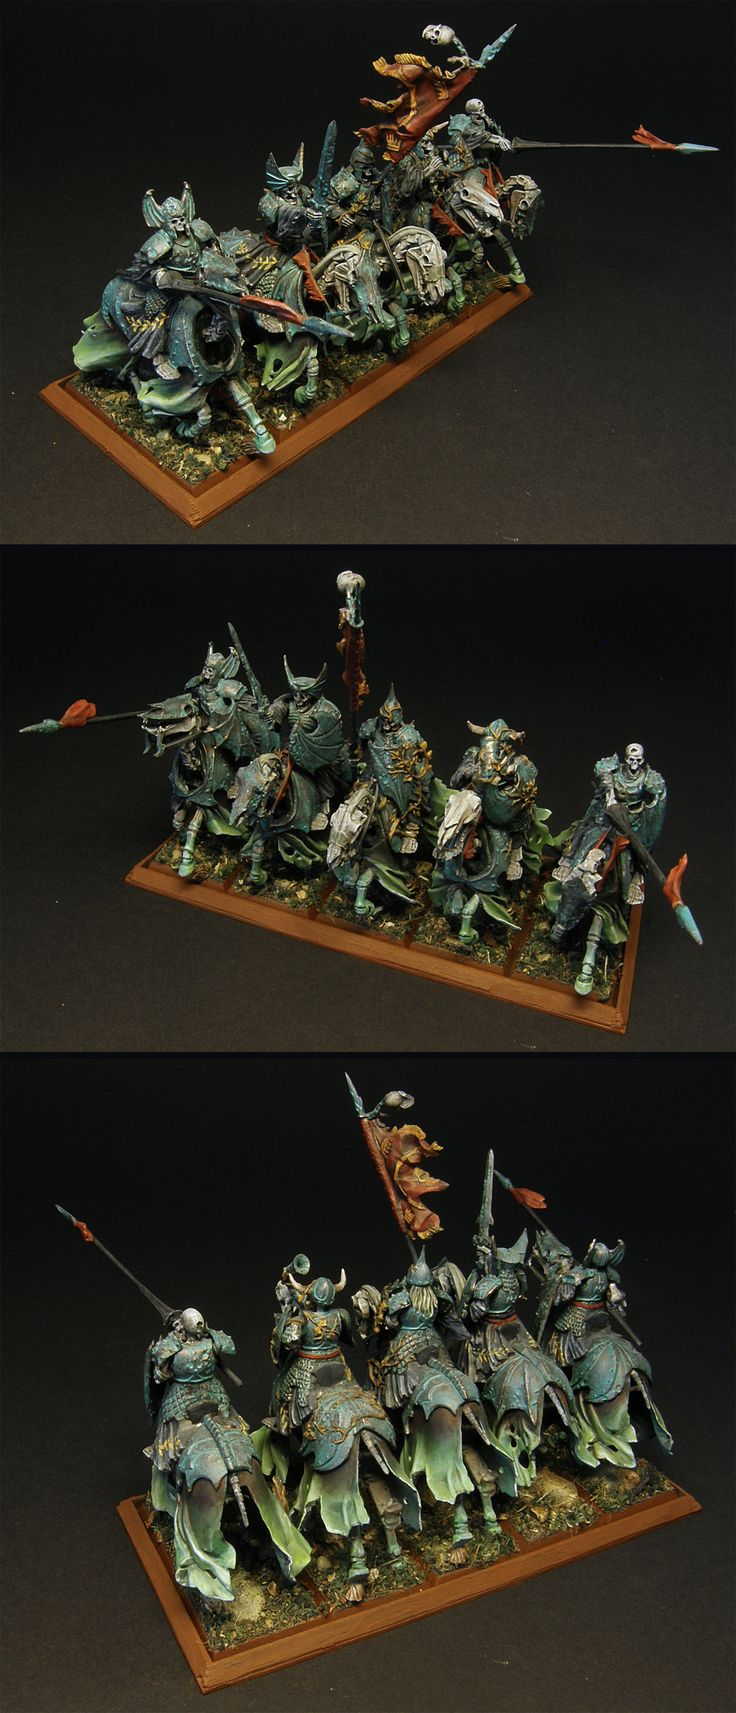 Borgnine's Painting Blog * * * Black Knights unit - painted for Vampire Counts, Warhammer Fantasy Battle - but can work for Age of Sigmar if need be. Right now they belong to the Deathrattle faction in Death Grand Alliance.